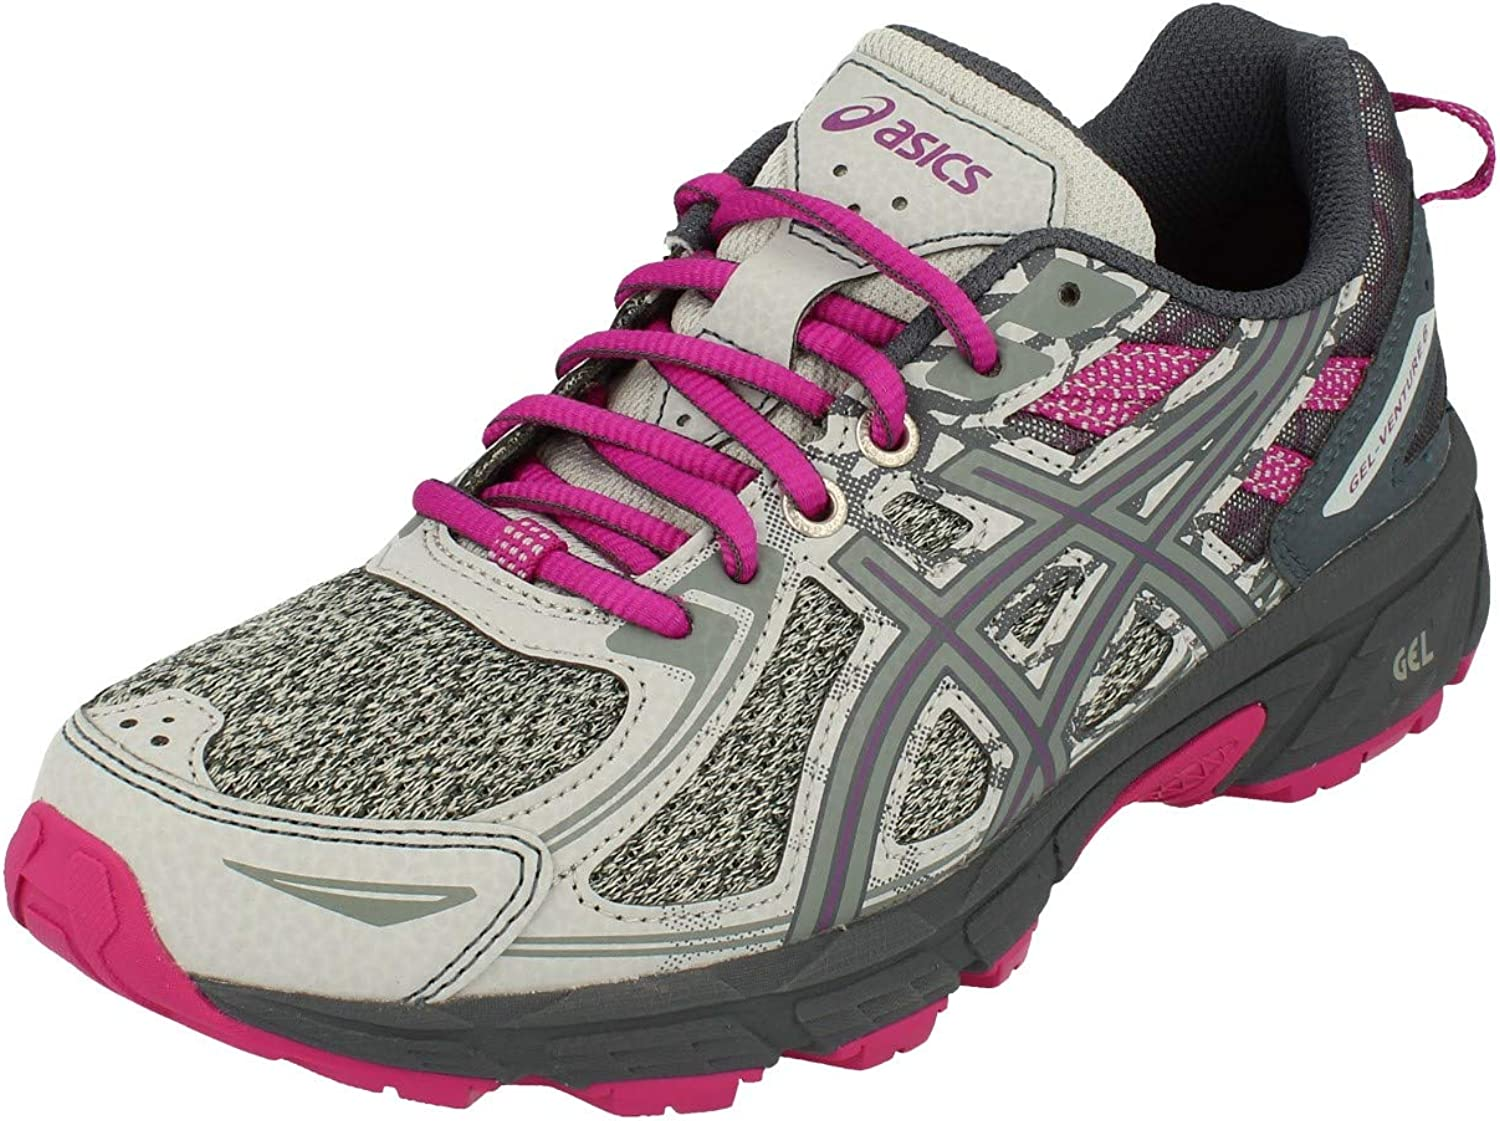 ASICS Gel-Venture 6 Femmes Running Trainers 1012A504 Sneakers Chaussures